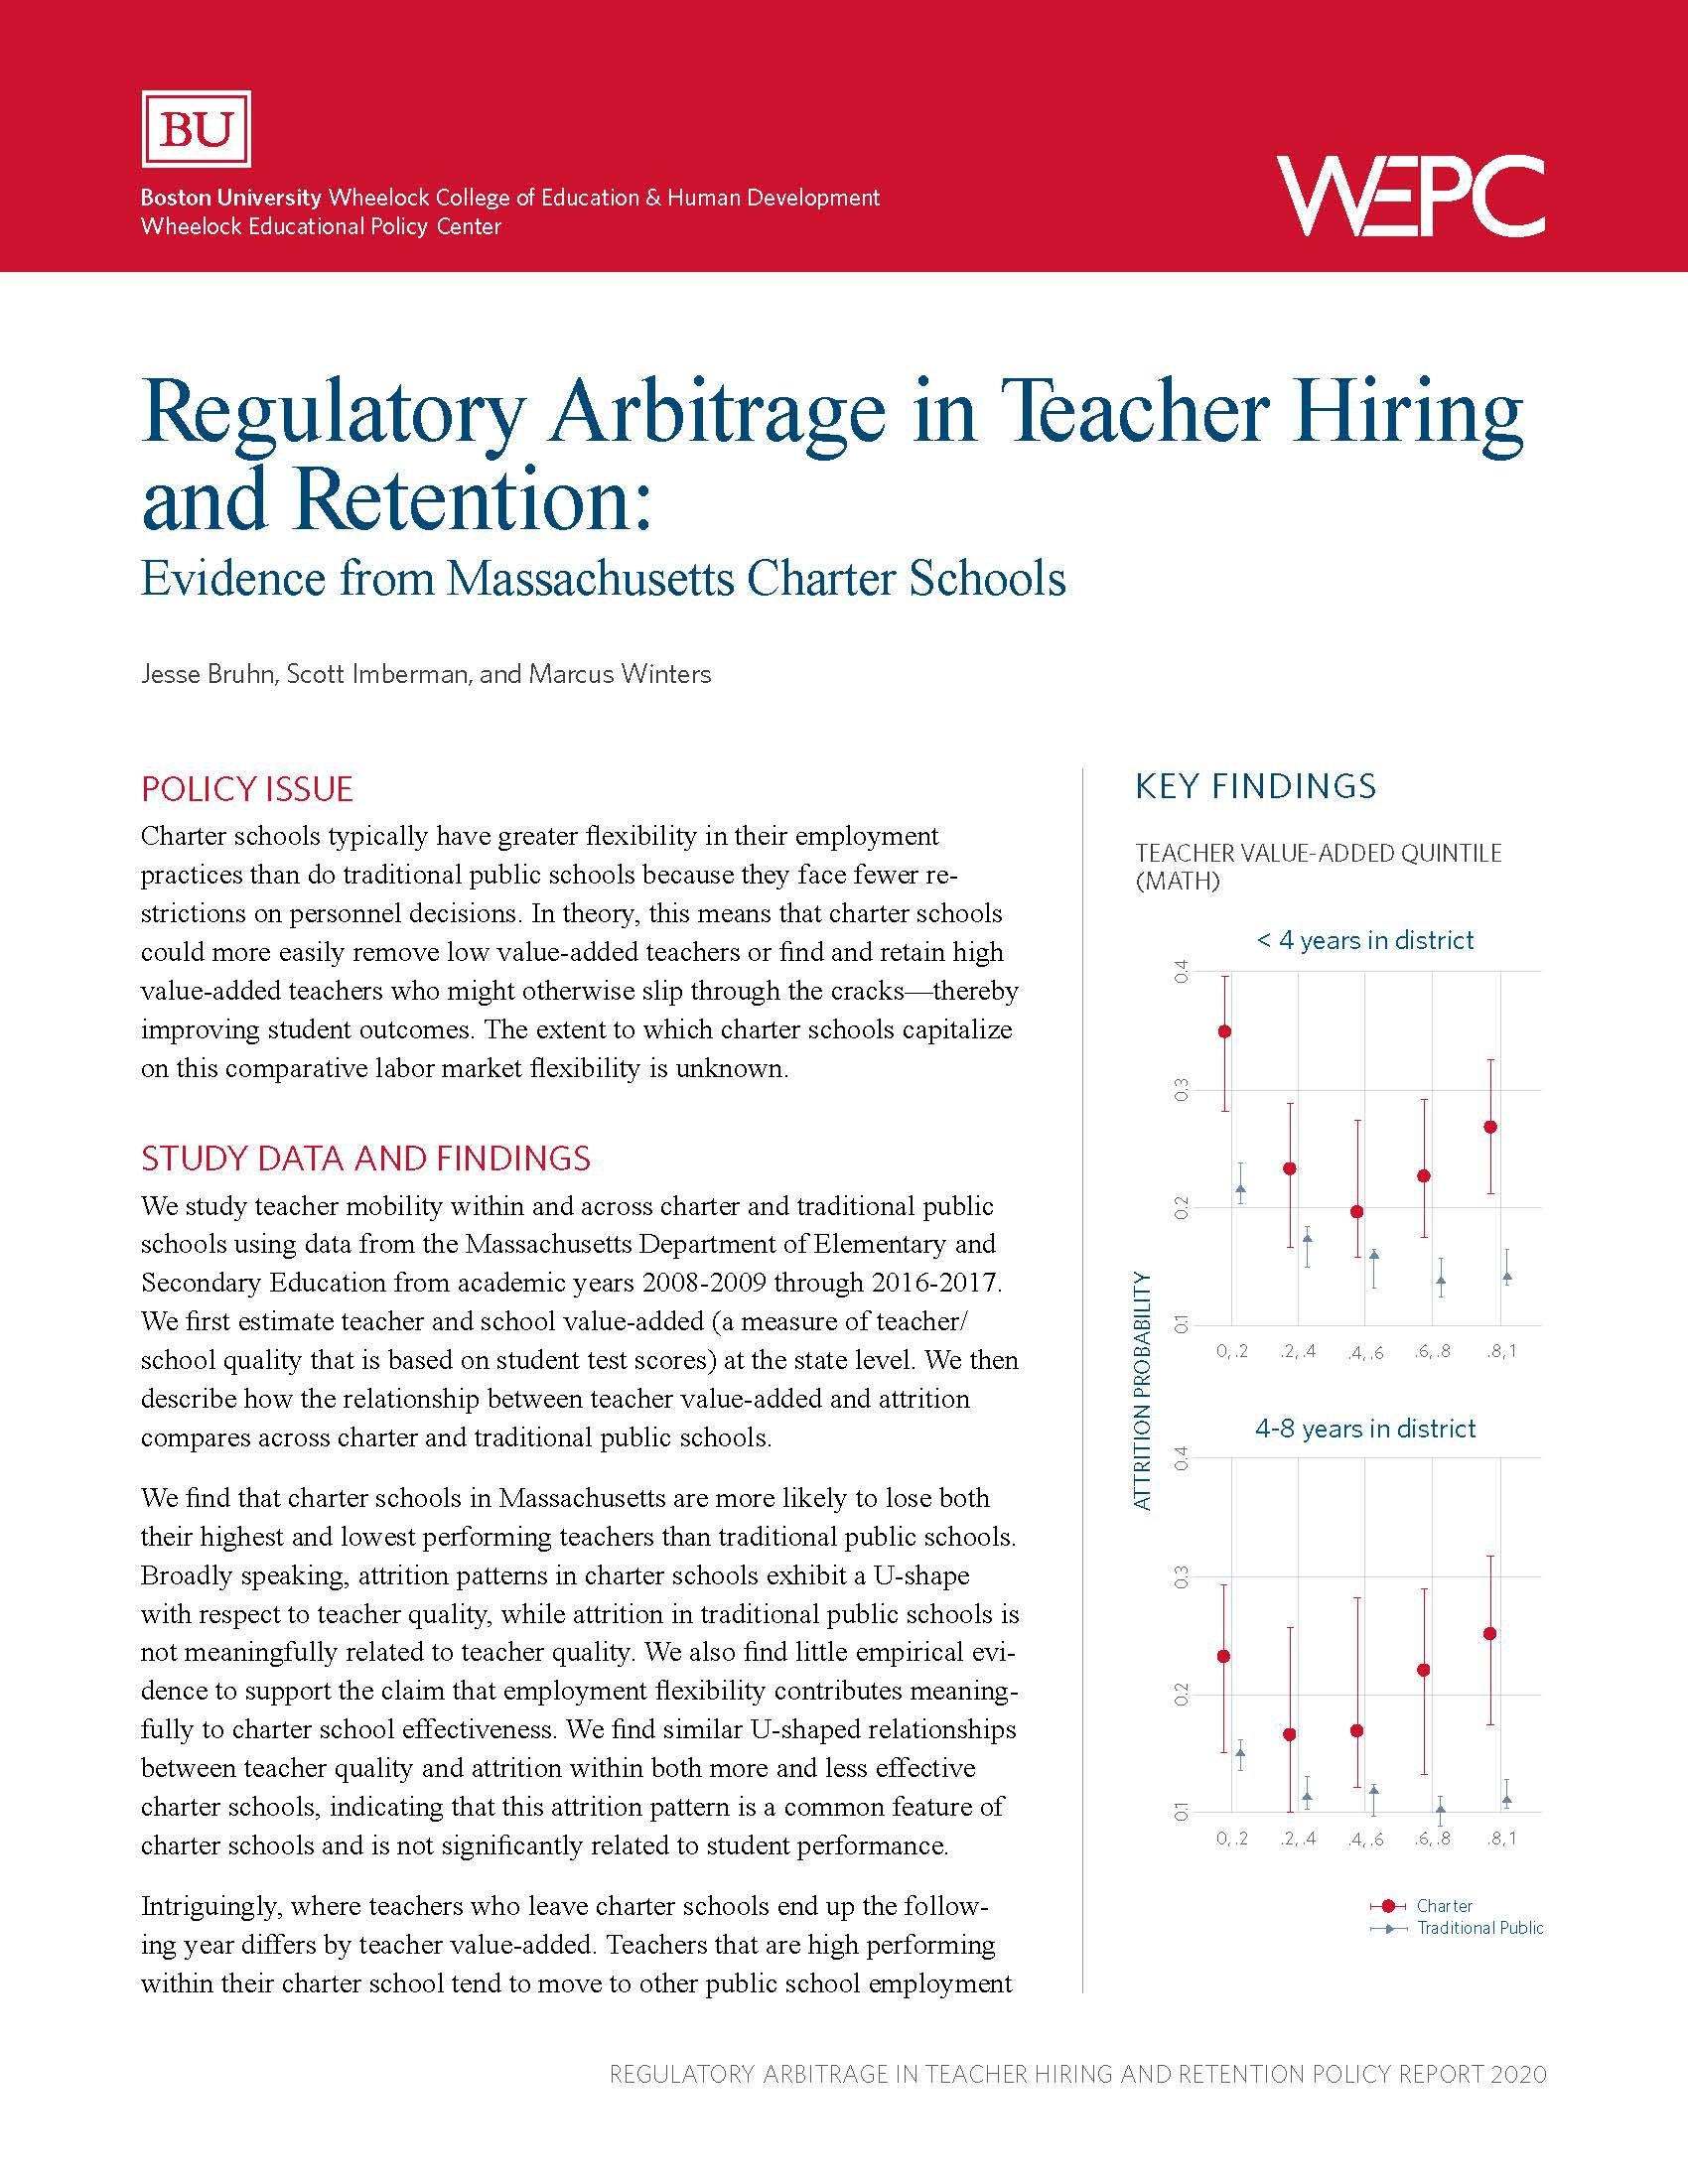 Charter Schooling Effect On Student Mobility Policy Brief